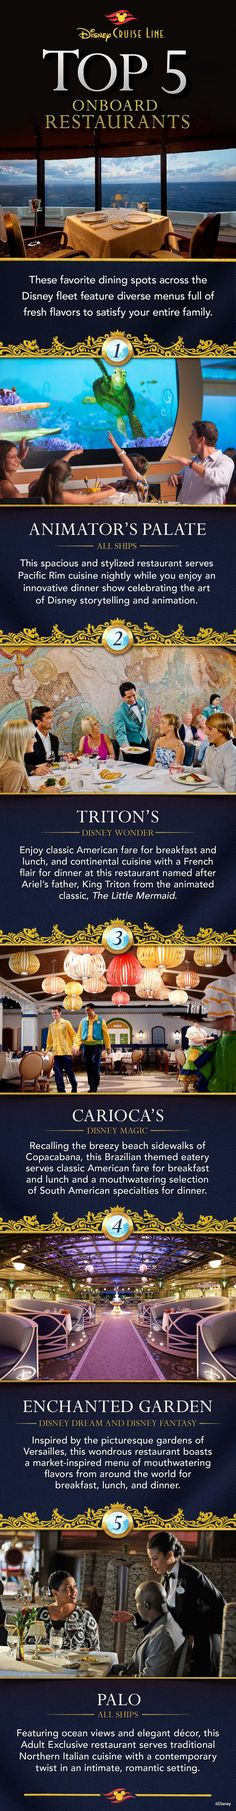 🔵🔵🔵 Get a cruise 🚢🚢🚢 for half price or even for free!🌎🌎🌎 These Top 5 favorite dining spots across the Disney Cruise Line fleet feature diverse menus full of fresh flavors to satisfy your entire family. Disney Destinations, Disney Vacations, Disney Trips, Family Vacations, Authorized Disney Vacation Planner, Disney Vacation Planning, Cruise Travel, Cruise Vacation, Cruise Tips